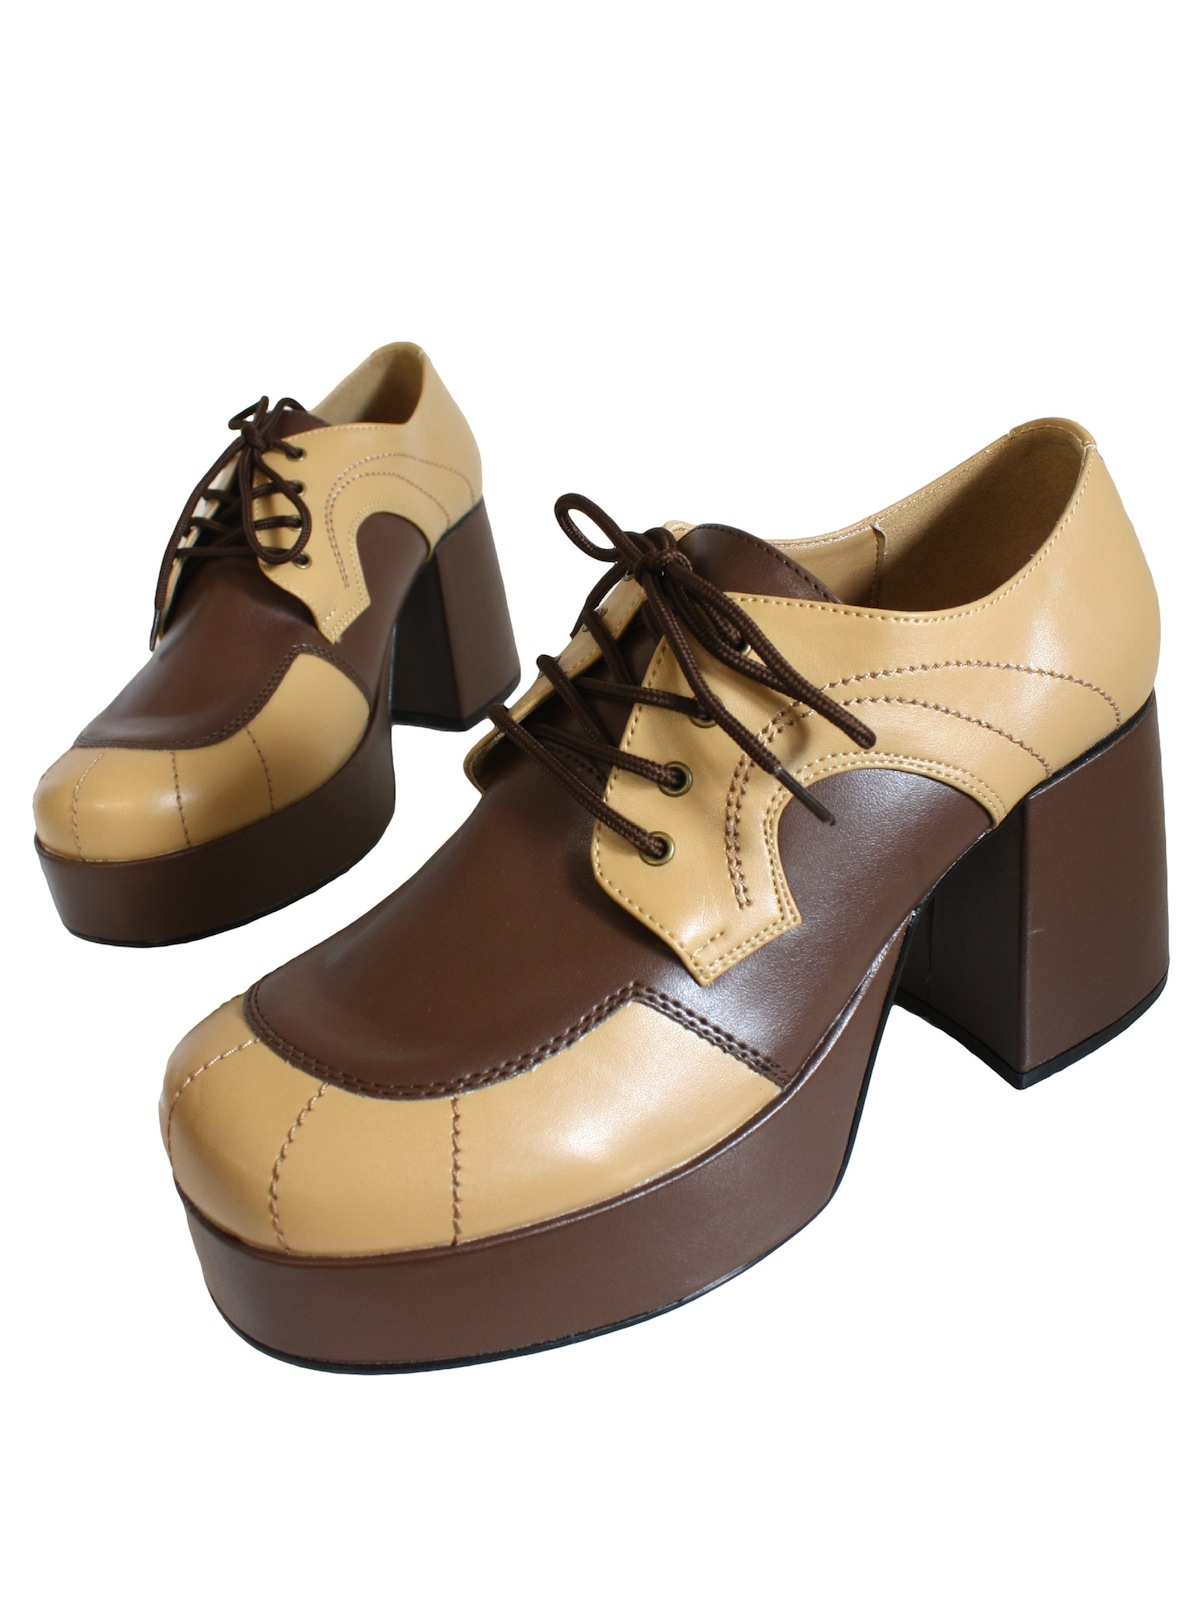 c82232ffe4d6 Vintage 70s Shoes  70s reproduction (made recently) -Two Tone Brown ...